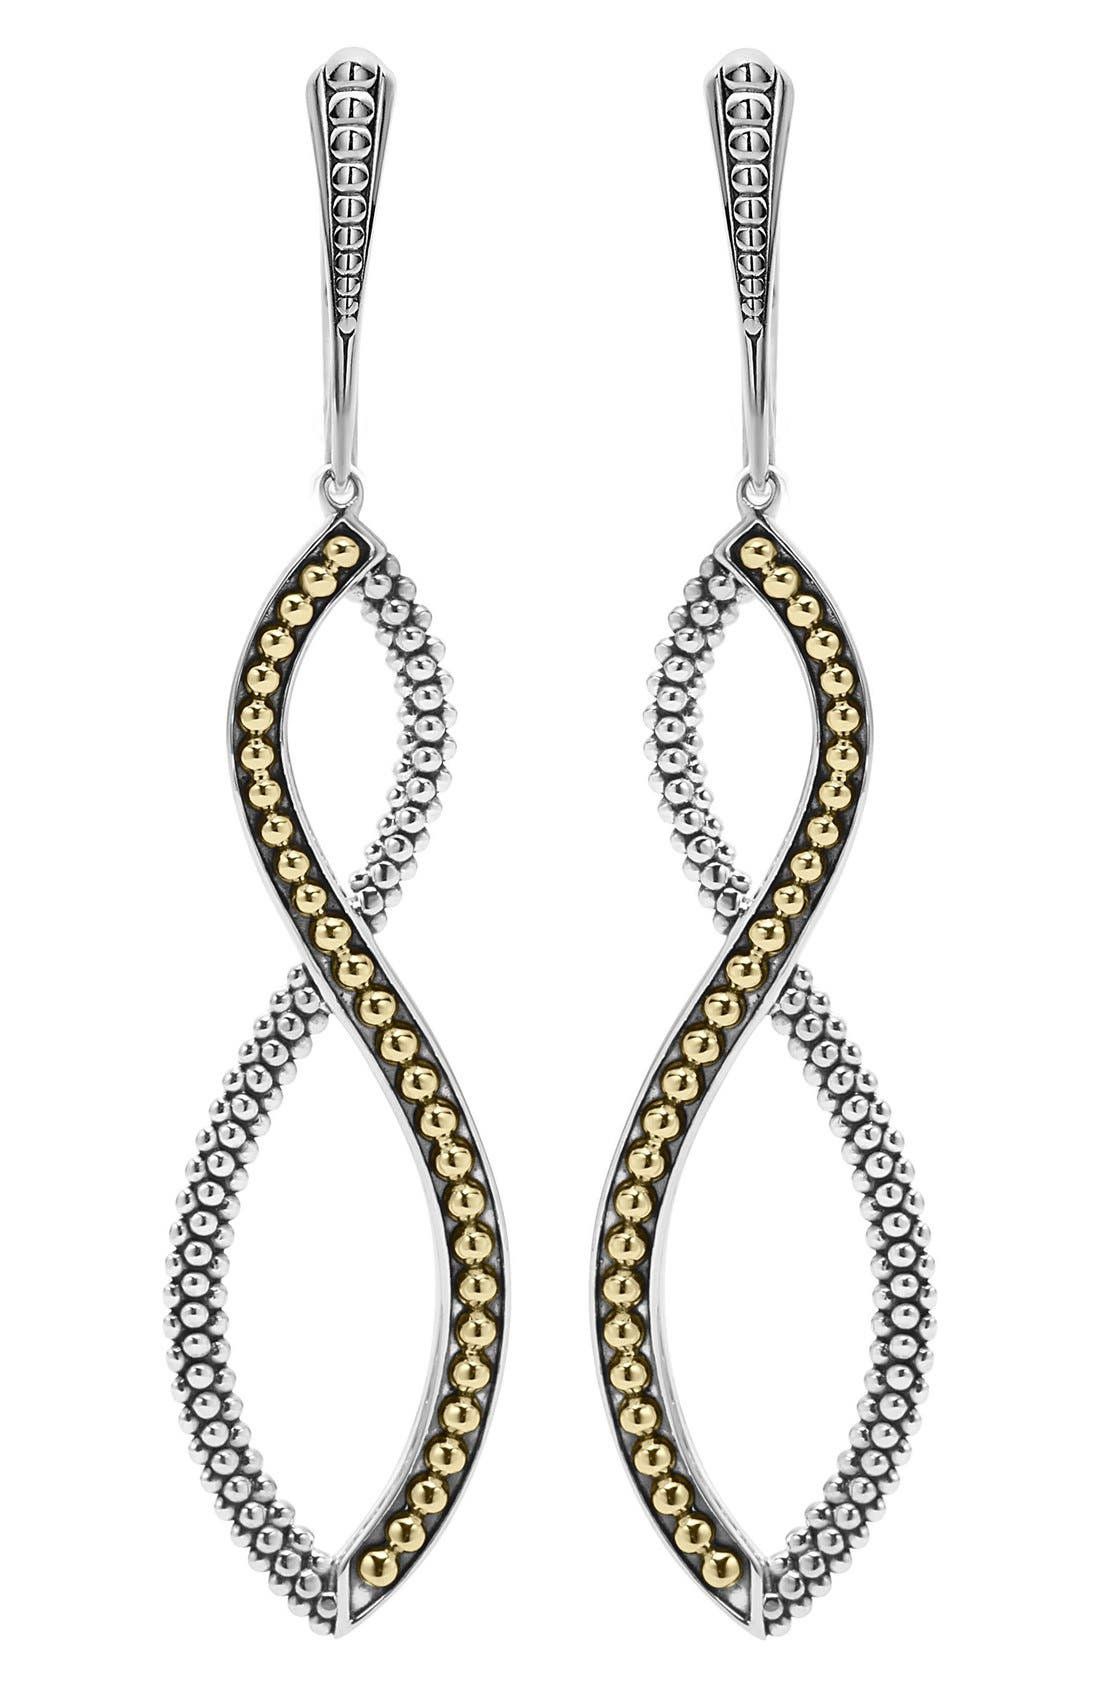 Infinity Twist Drop Earrings,                             Main thumbnail 1, color,                             SILVER/ GOLD